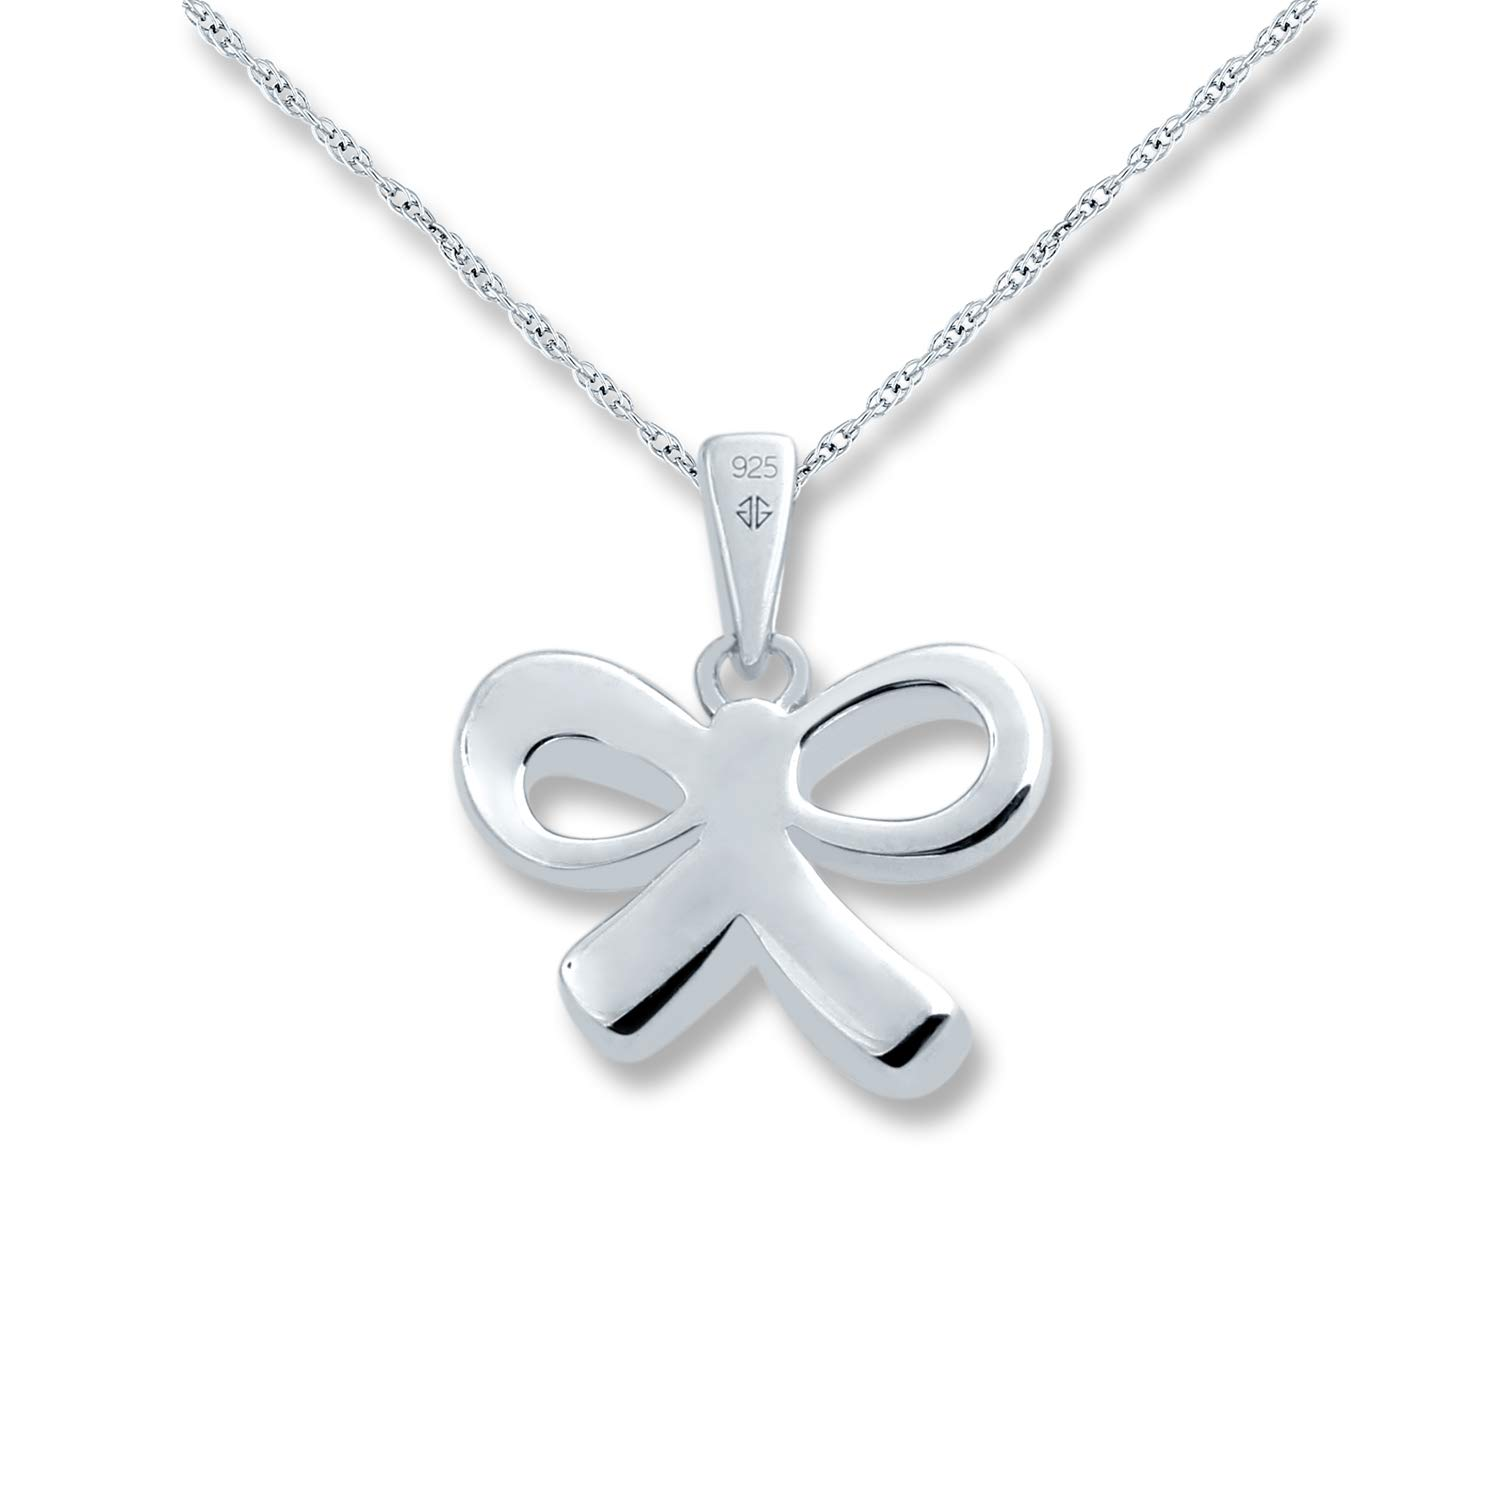 TJC Jewelry 1//20 Cttw Ribbon Bow Diamond Pendant in Sterling Silver